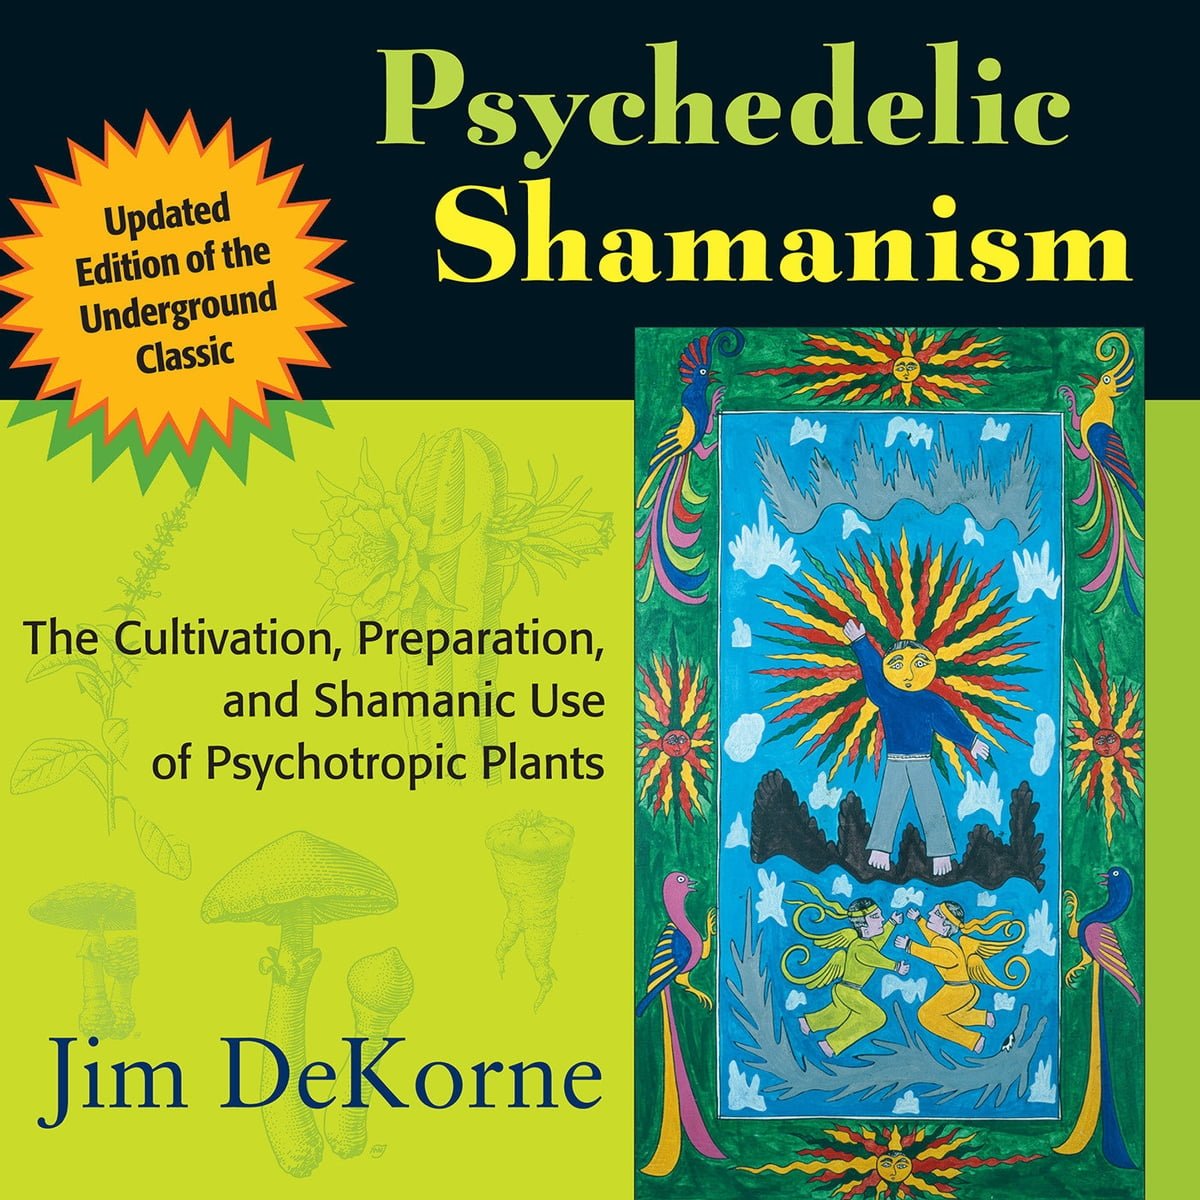 Psychedelic Shamanism: The Cultivation, Preparation and Shamanic Use of Psychotropic Plants